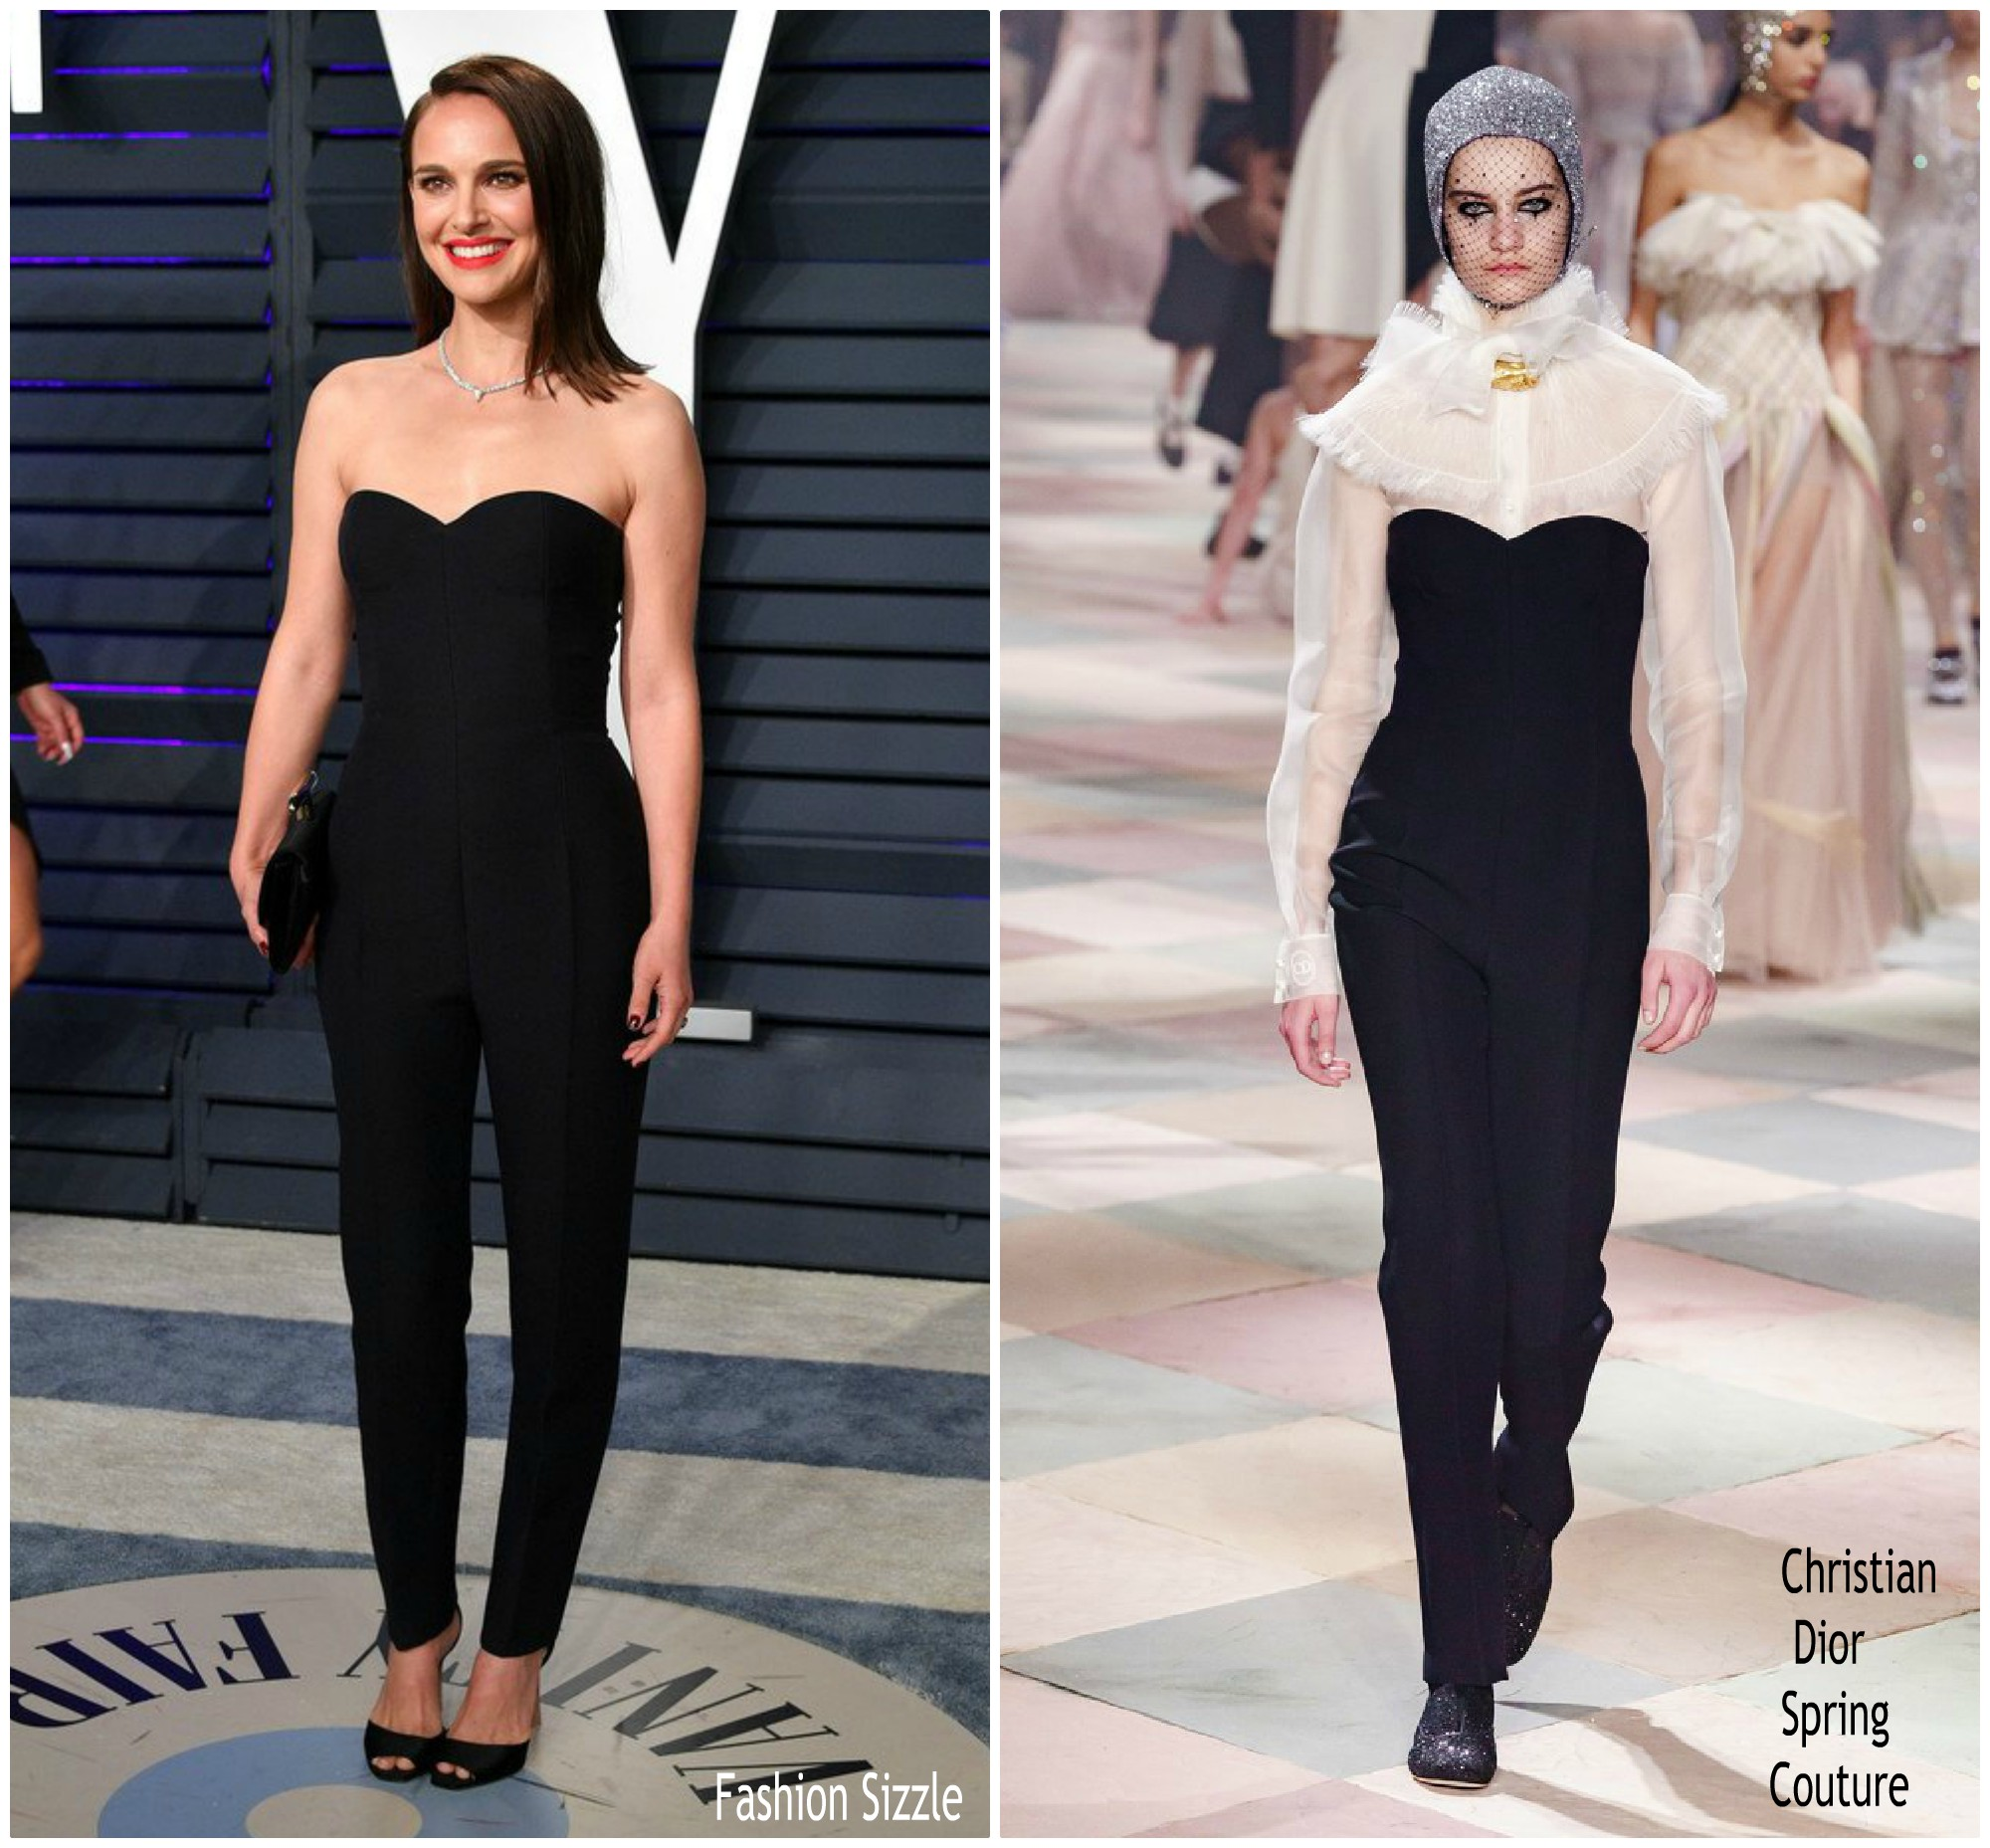 natalie-portman-in-christian-dior-2019-vanity-fair-oscar-party